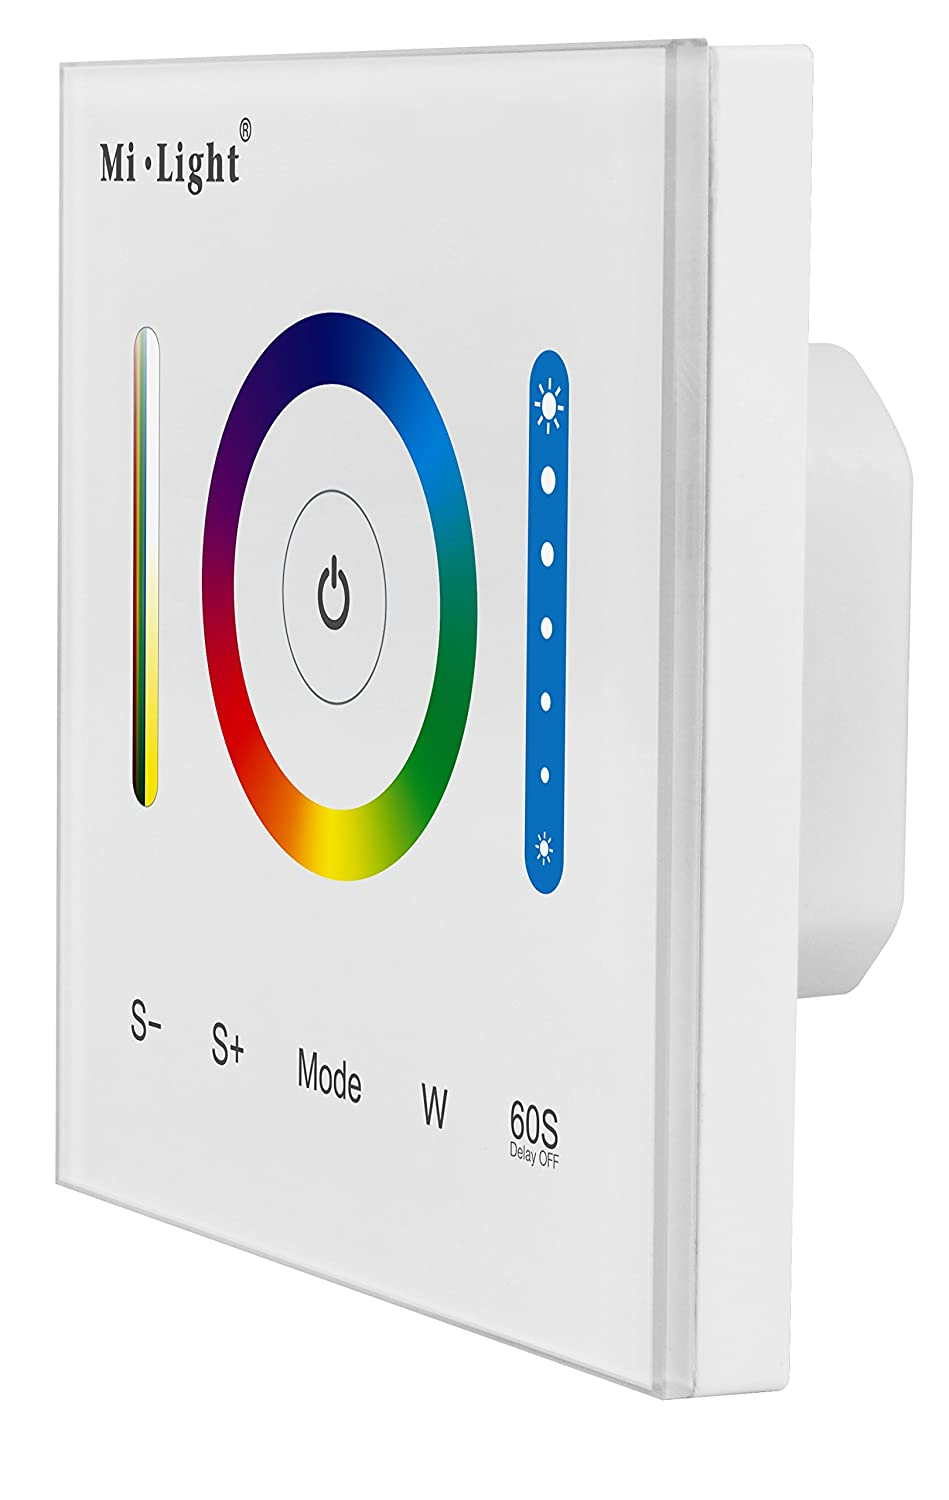 Smart panel controller P3 Smart Panel LED Controller RGB RGBW RGB+CCT 12V 24V Touch Switch Dimmer LIGHTEU